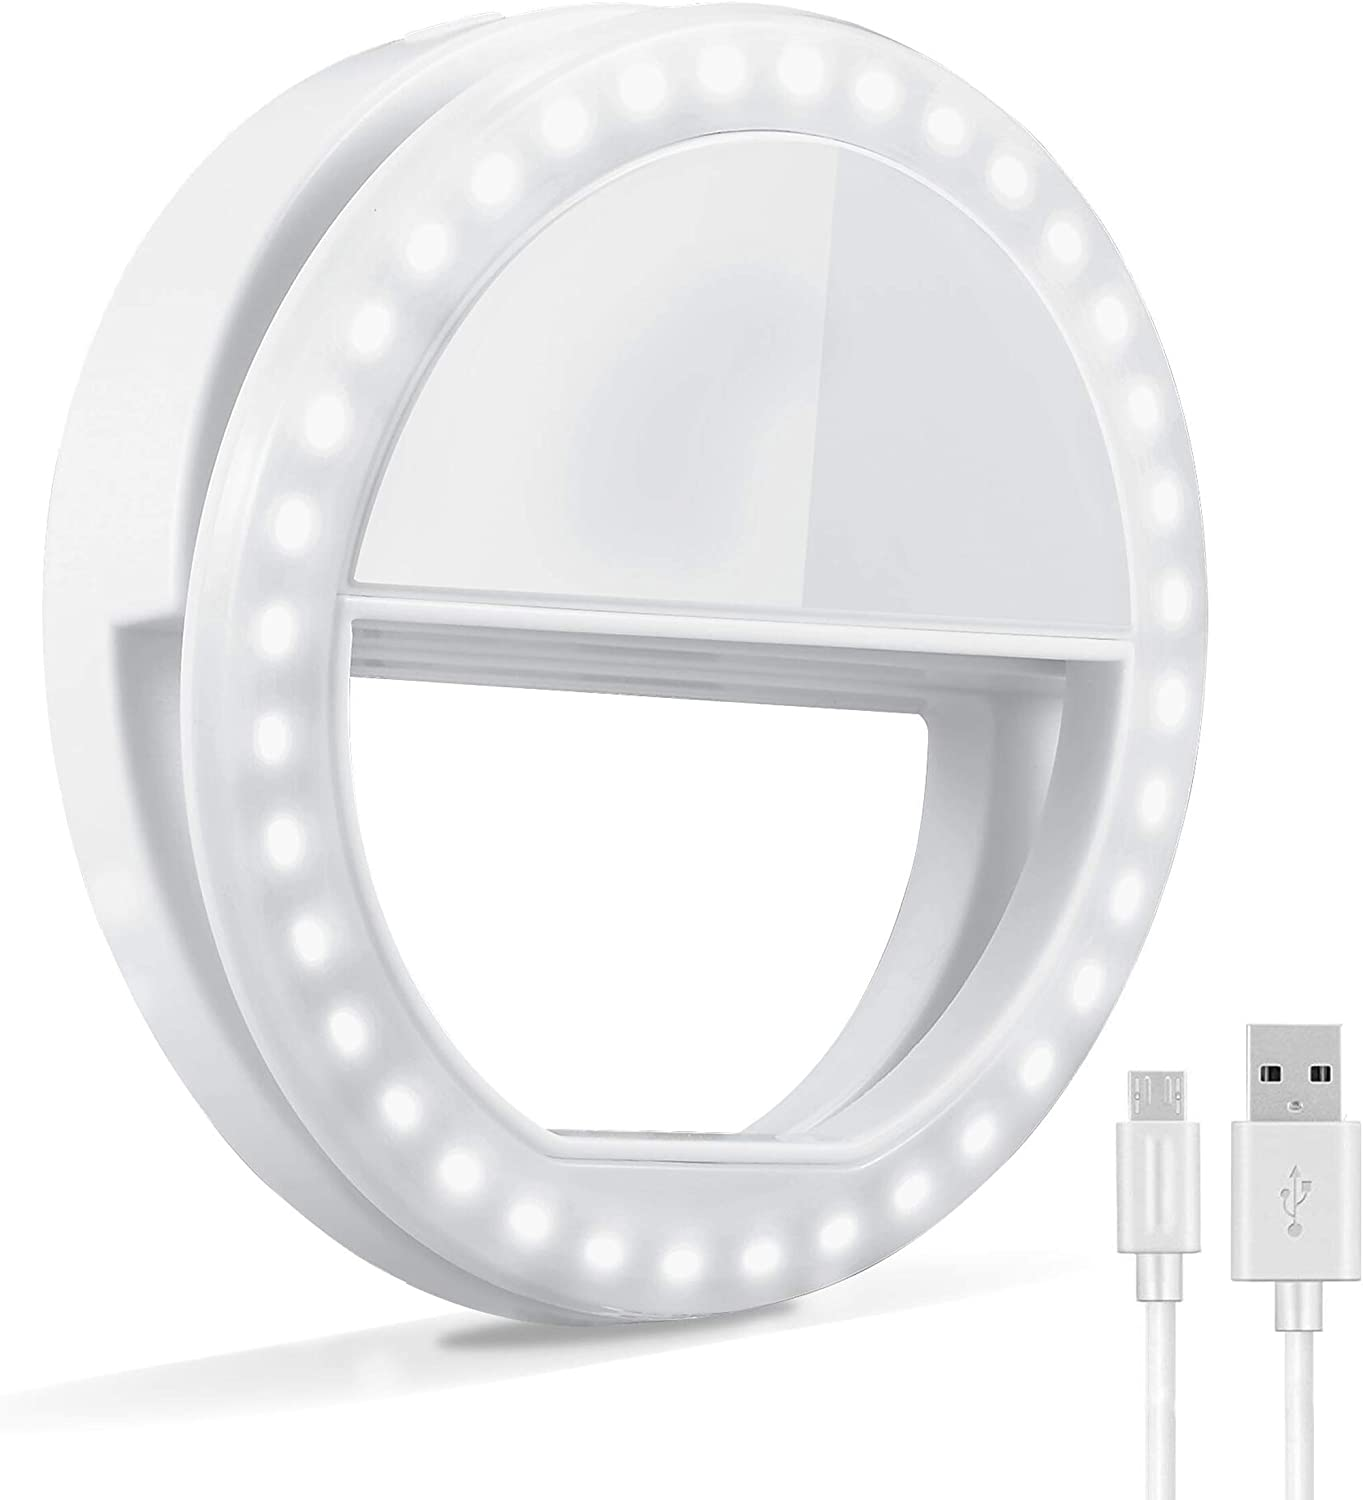 Selfie Ring Light, Oternal Selfie Light Rechargeable Portable Clip-on Selfie Fill Ring Light for iPhone Android Smart Phone Photography, Camera Video, Girl Makes up (Grey White)